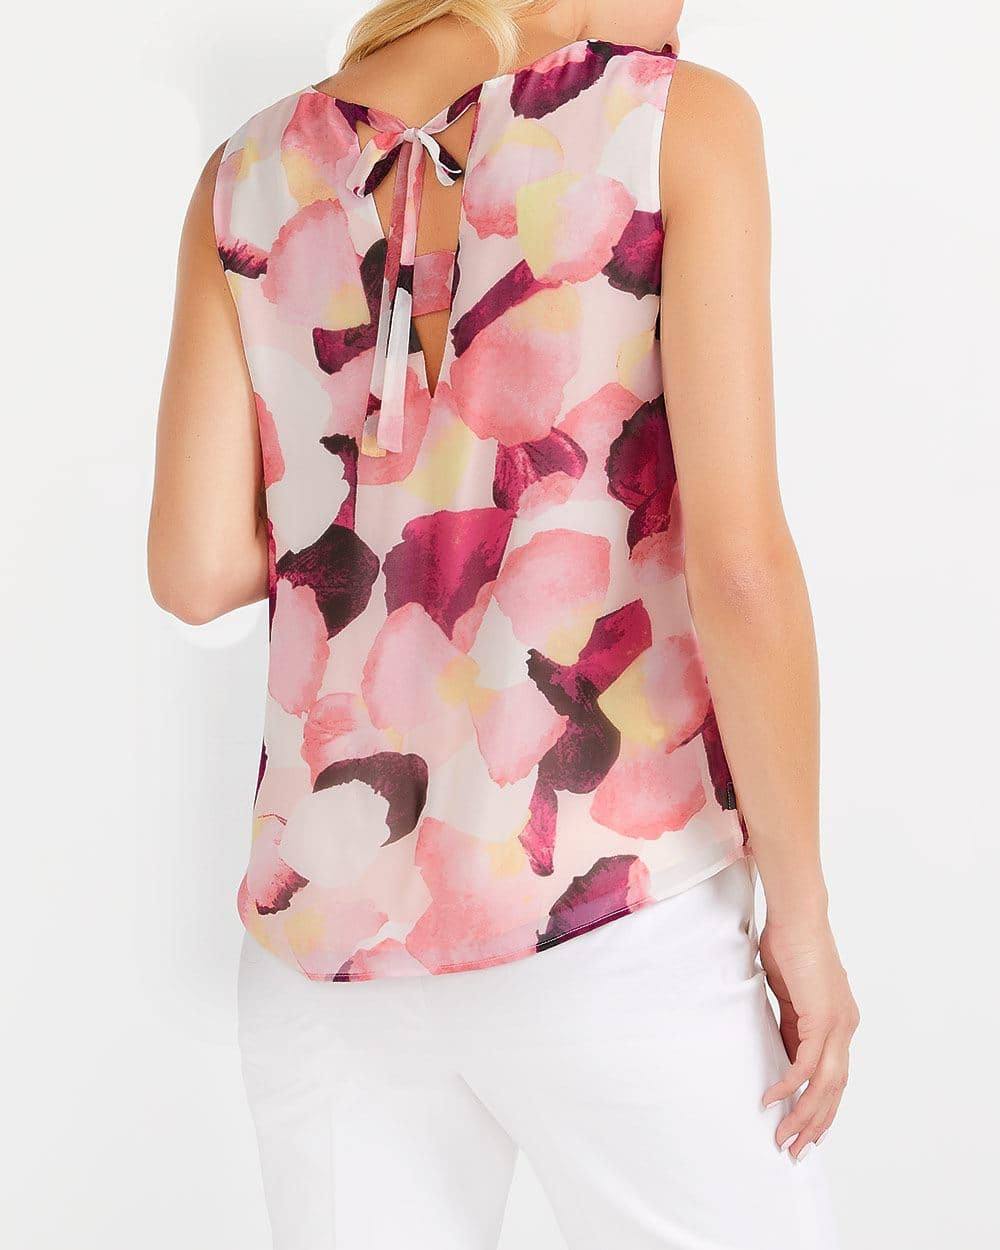 Willow & Thread Back Detail Printed Blouse